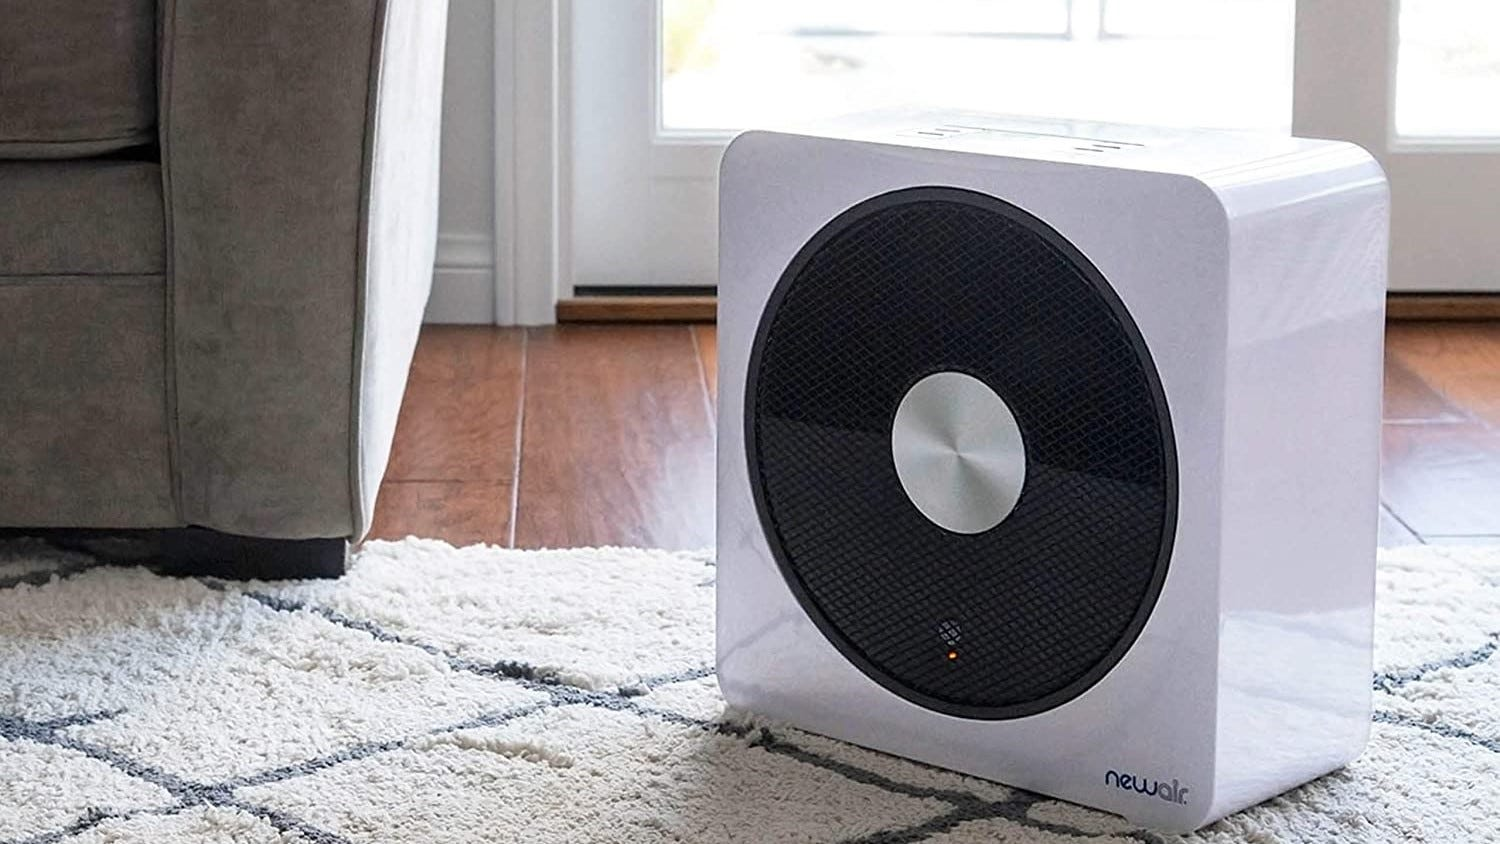 A stylish space heater with a minimal white design.